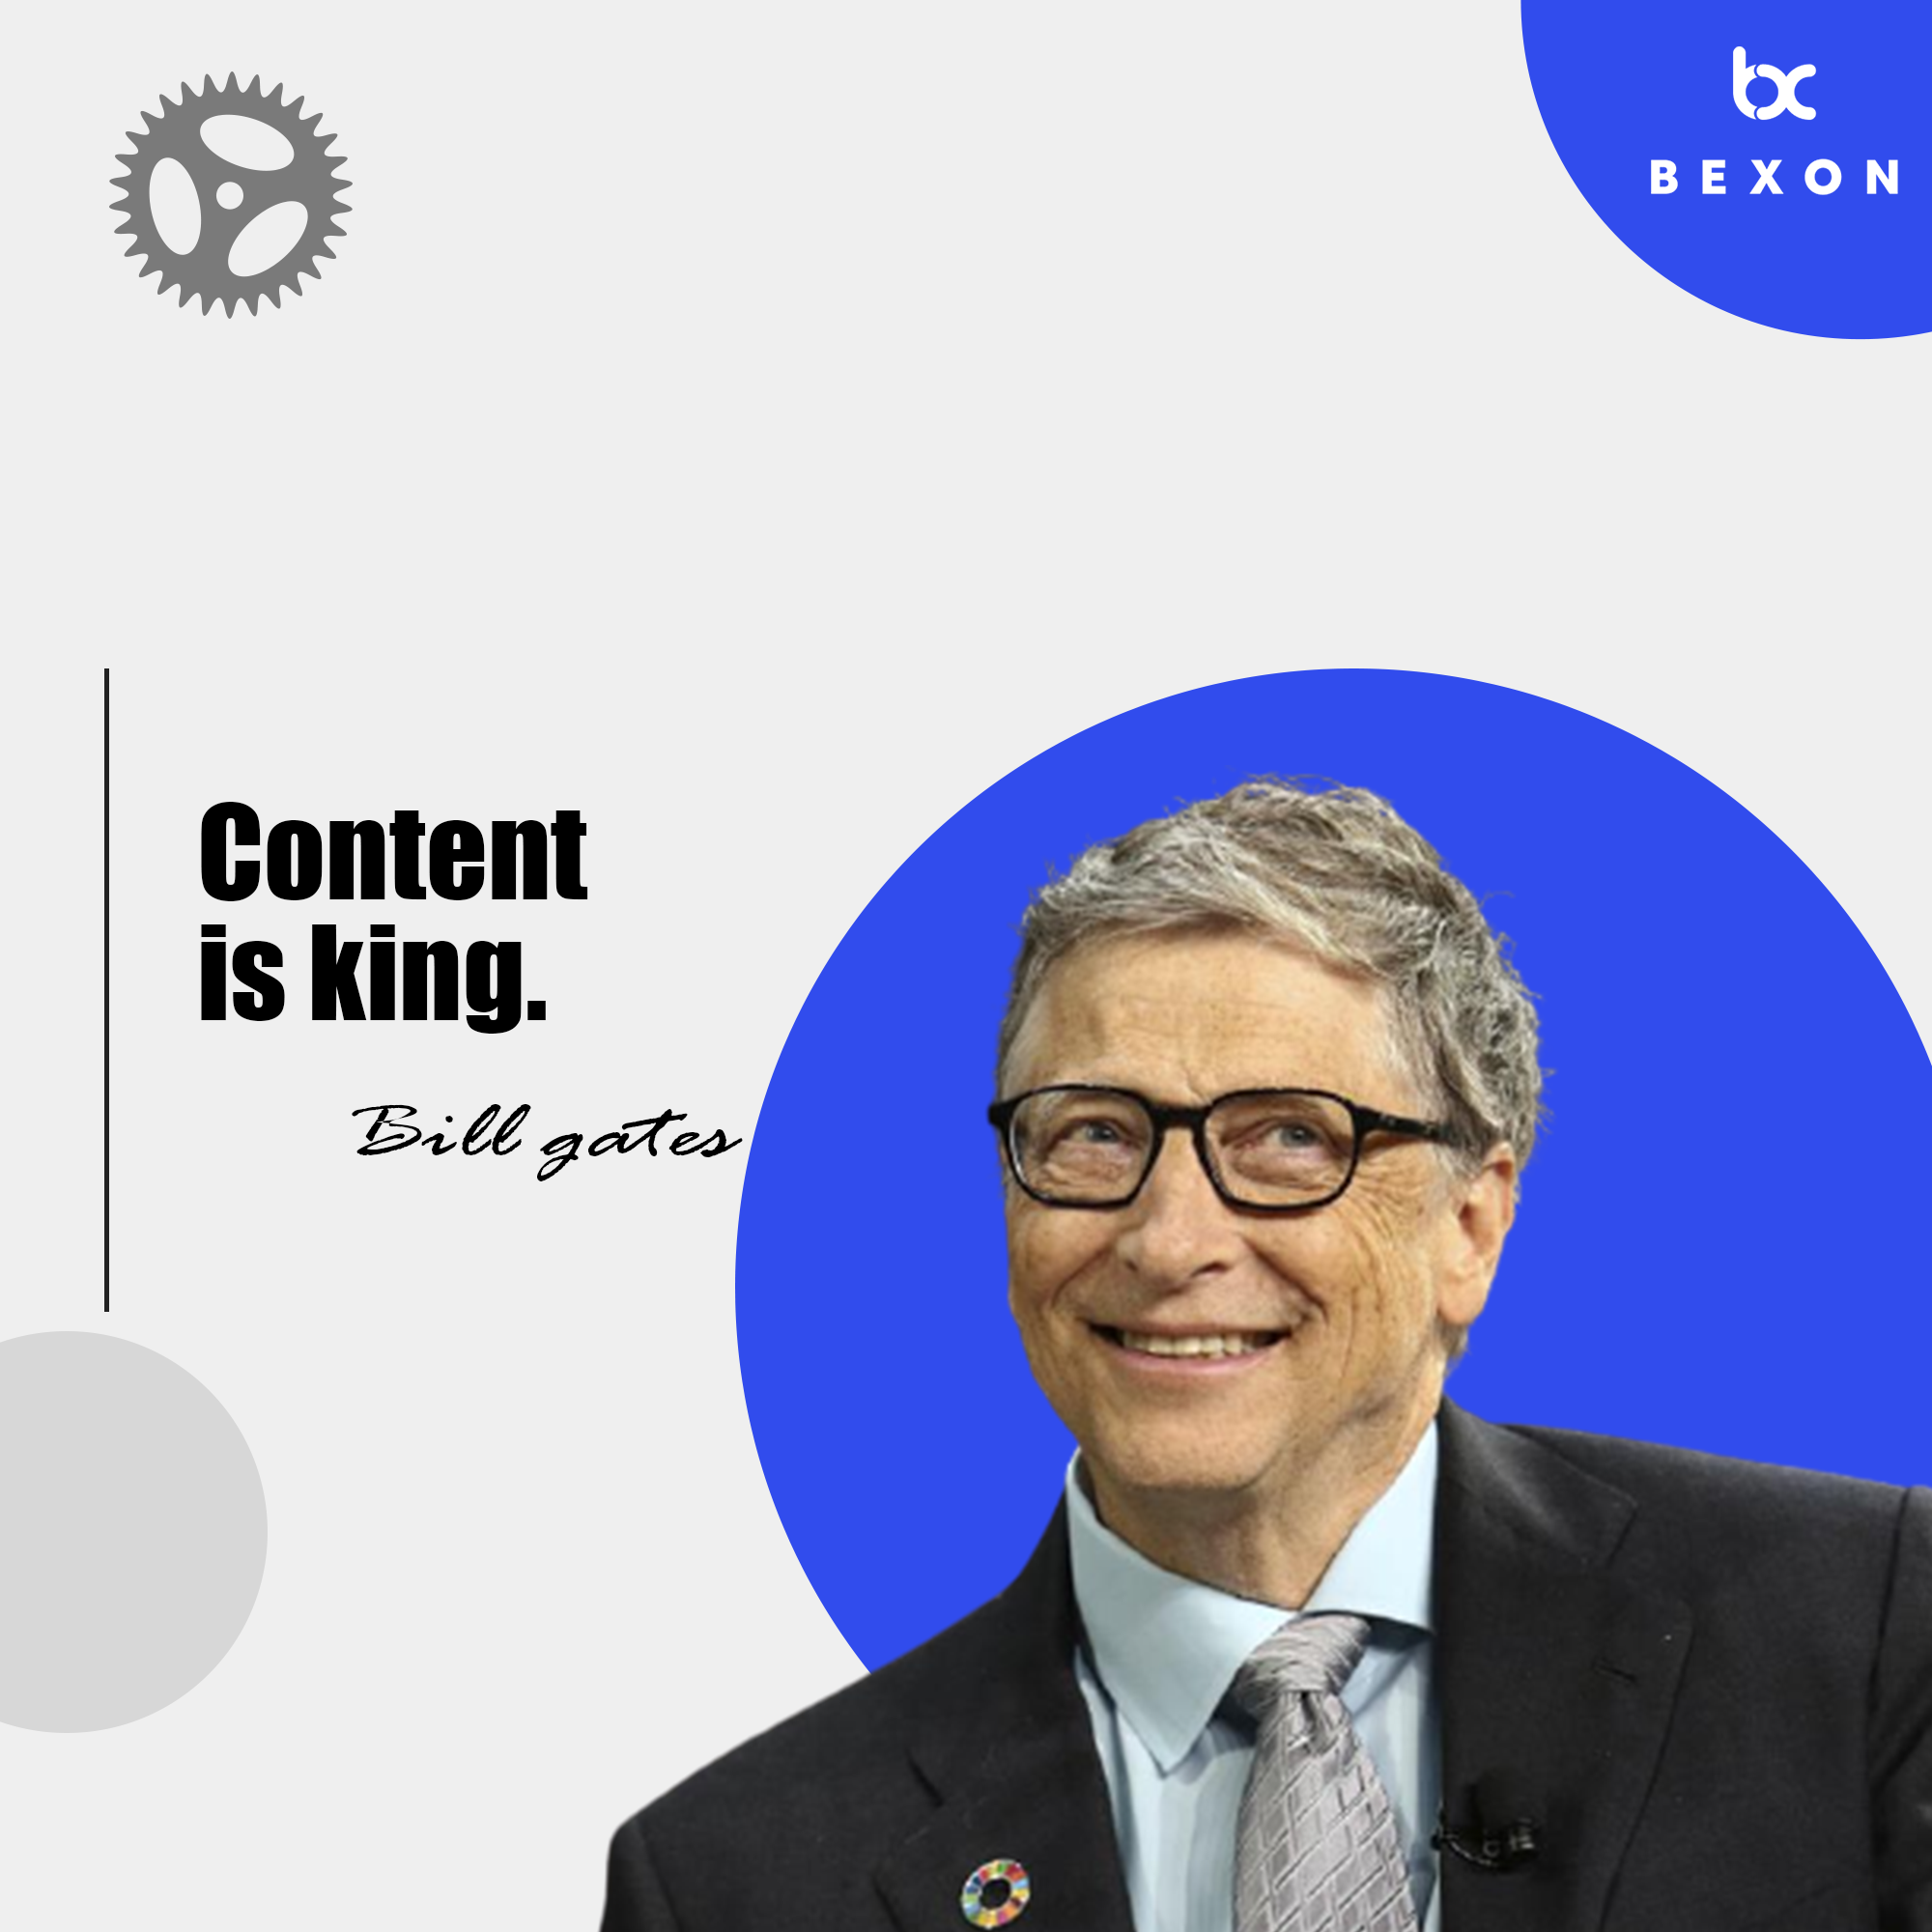 Bill Gates Quotes Content Is King In 2021 Bill Gates Quotes Digital Marketing Agency Marketing Quotes